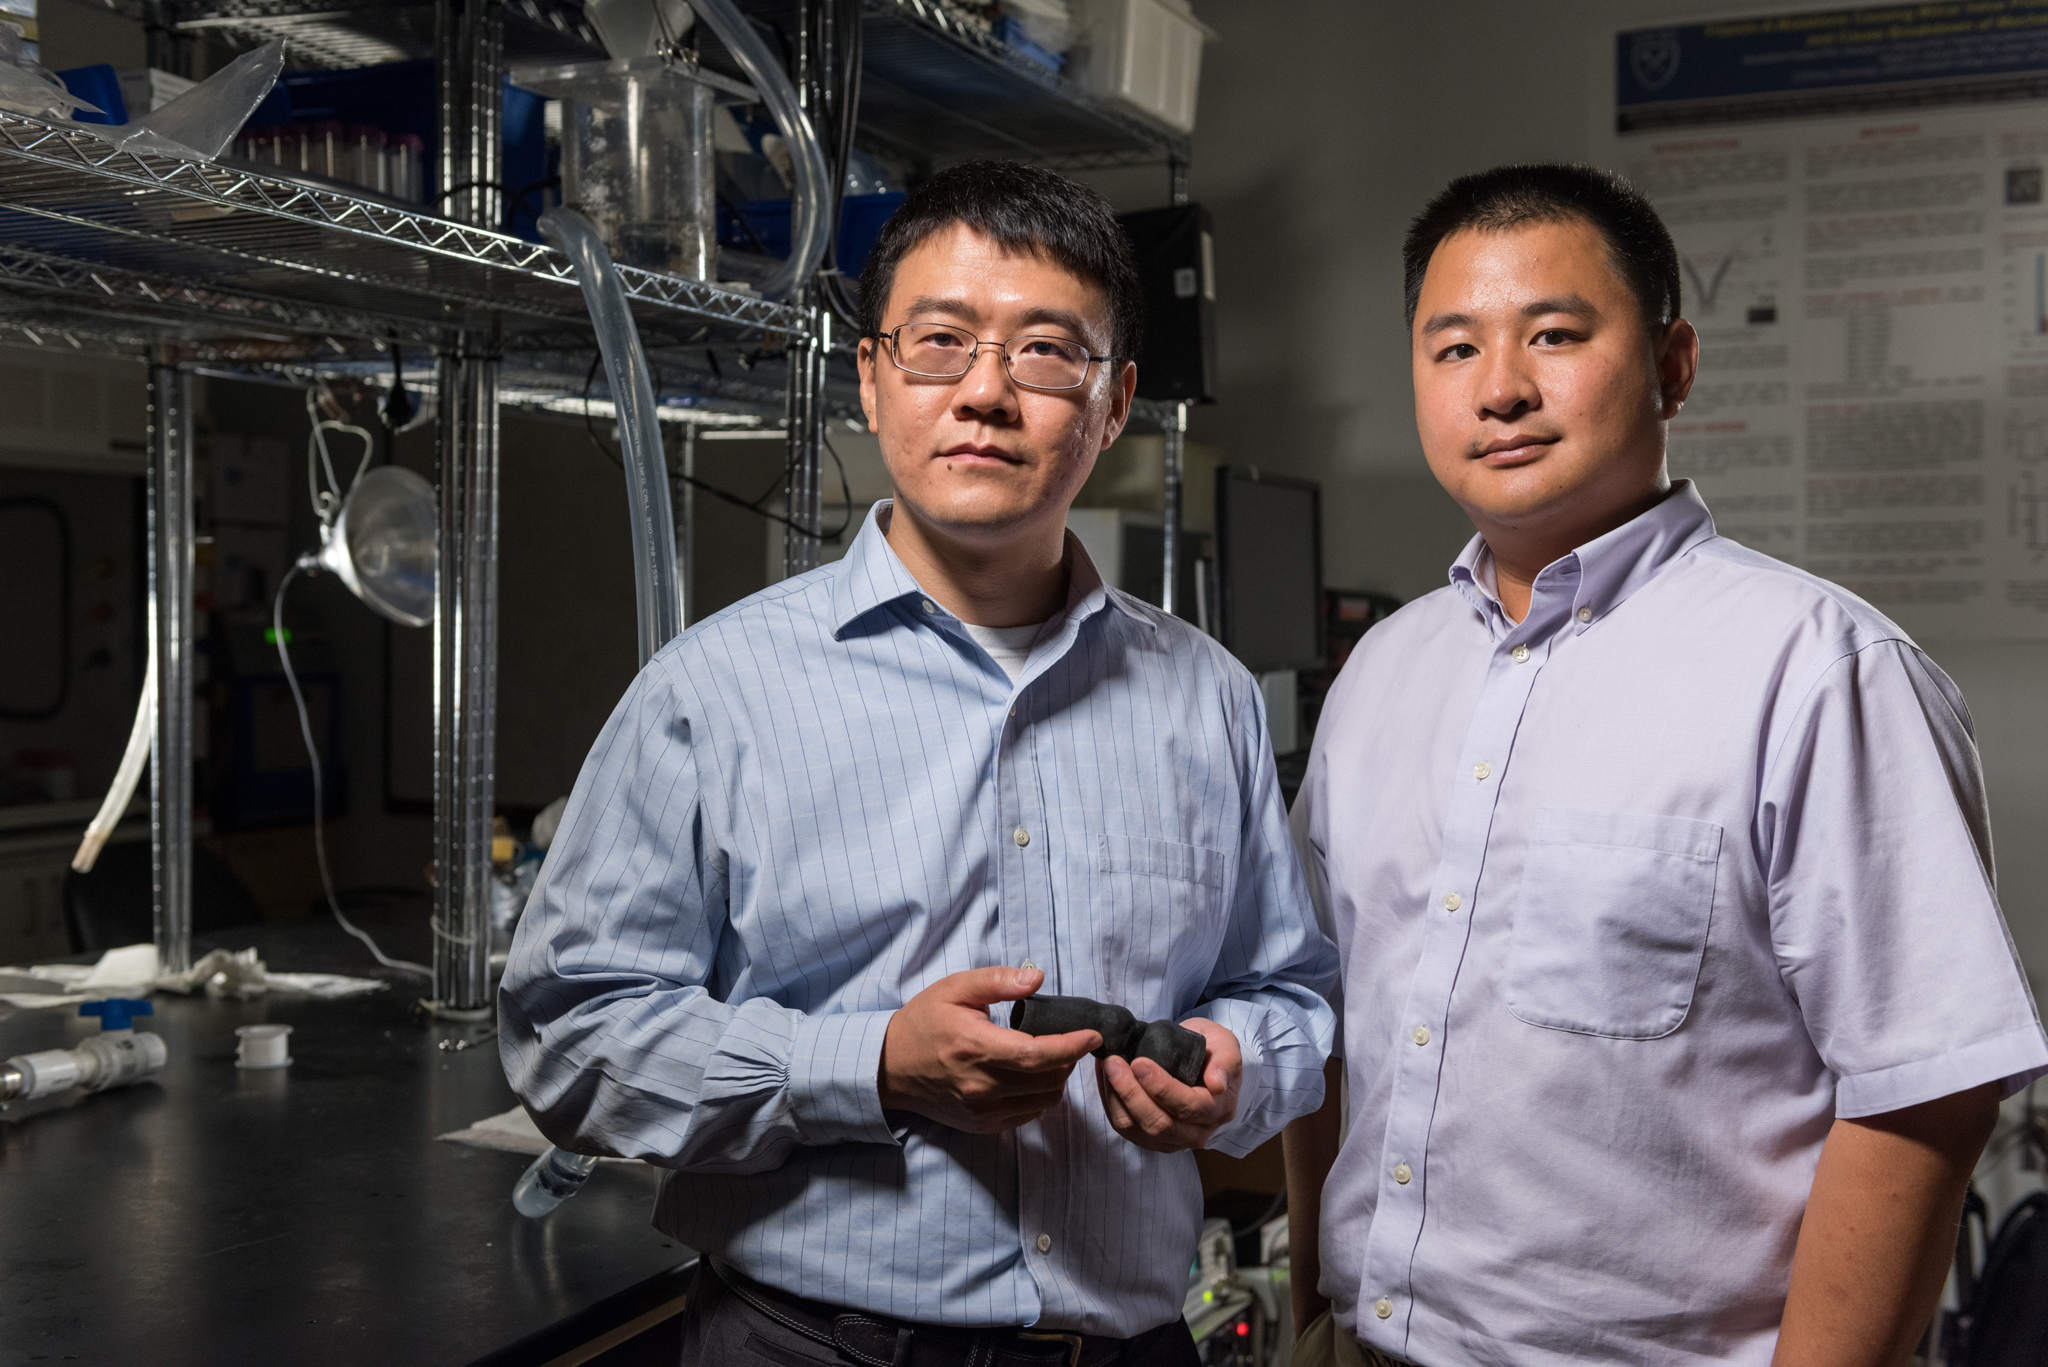 Zhen Qian, chief of Cardiovascular Imaging Research at Piedmont Heart Institute and Kan Wang. Photo via Rob Felt.